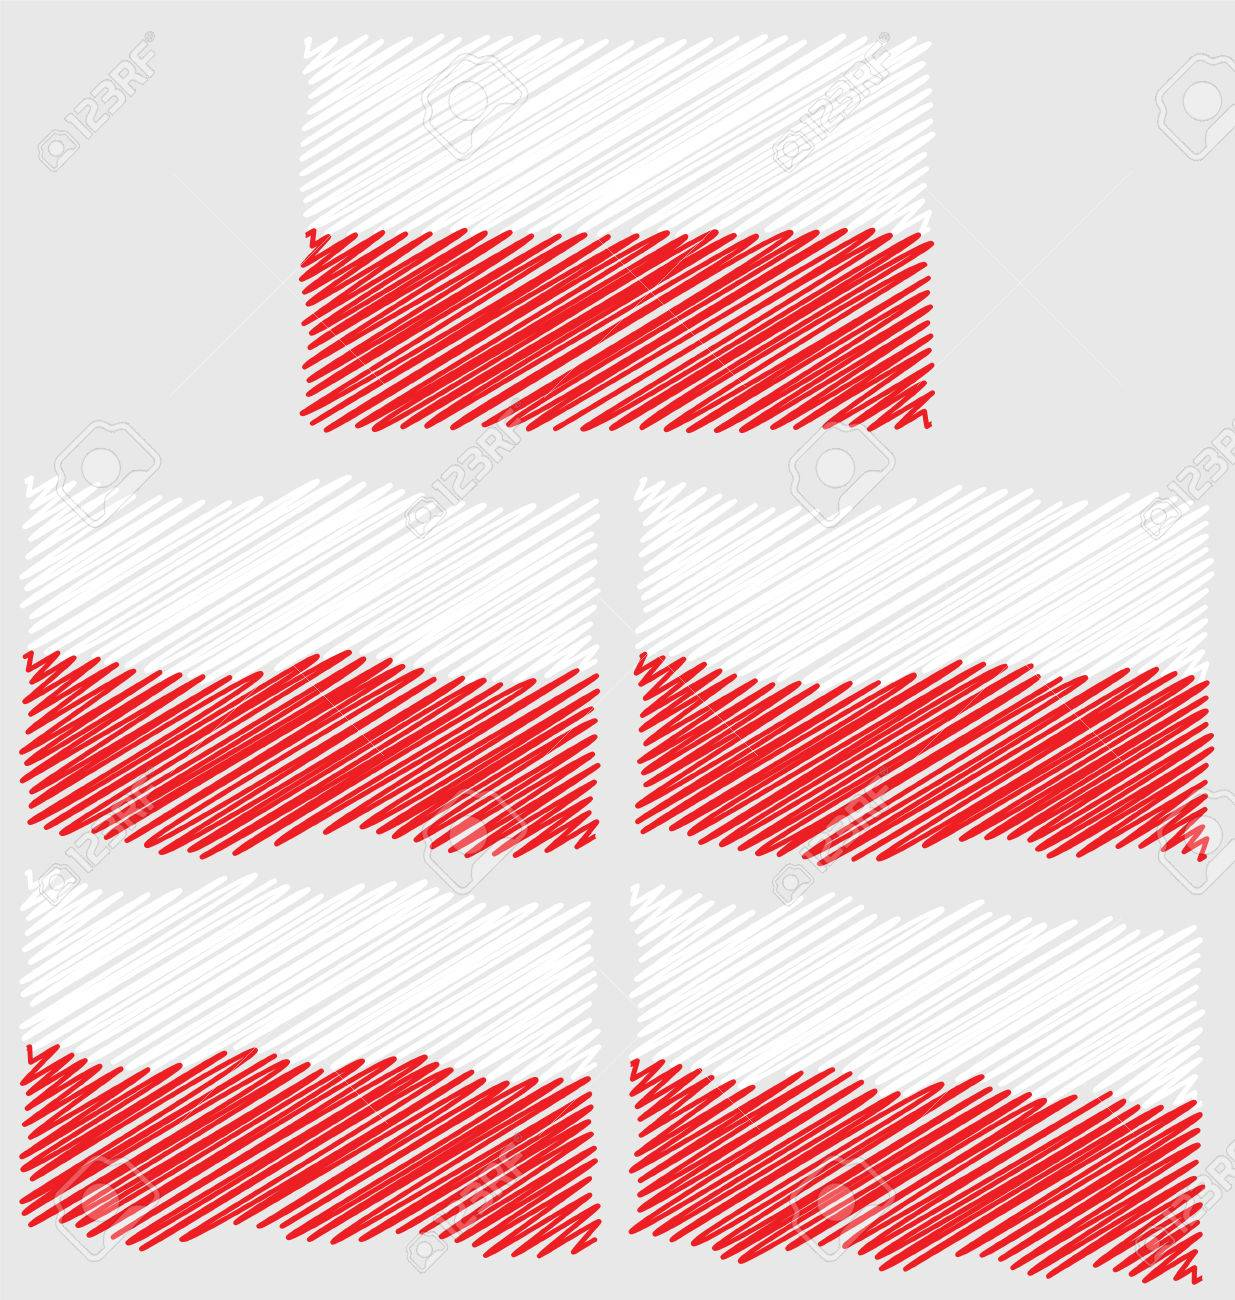 flat and waving hand draw sketch flag of poland country royalty